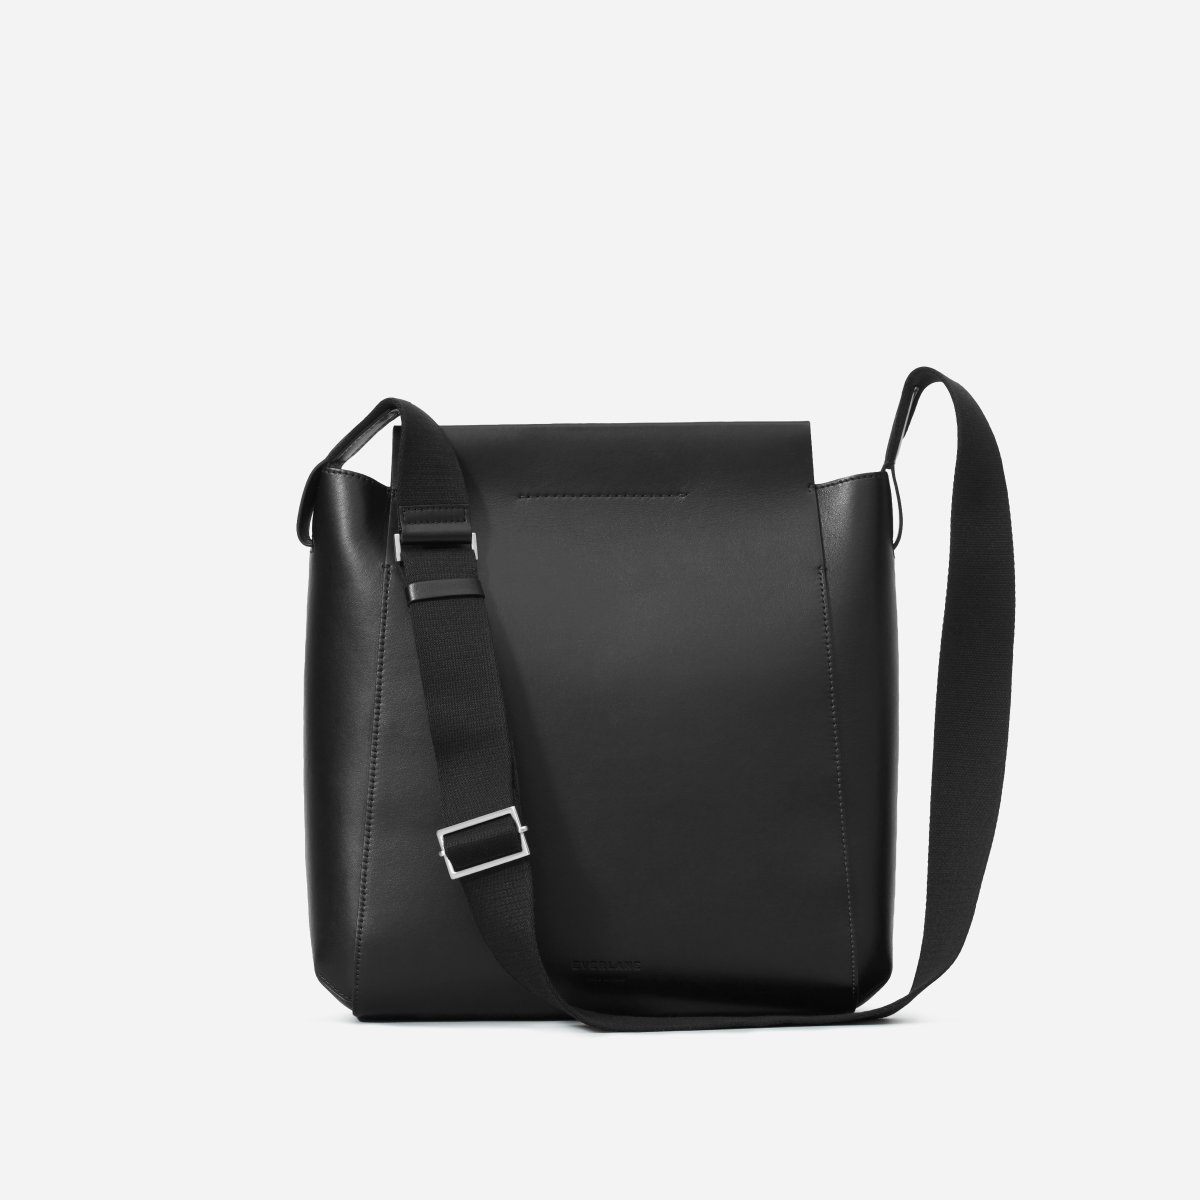 9f4a6c4c00b Everlane Just Launched Its Best Bag Yet—Get It Before It Sells Out ...